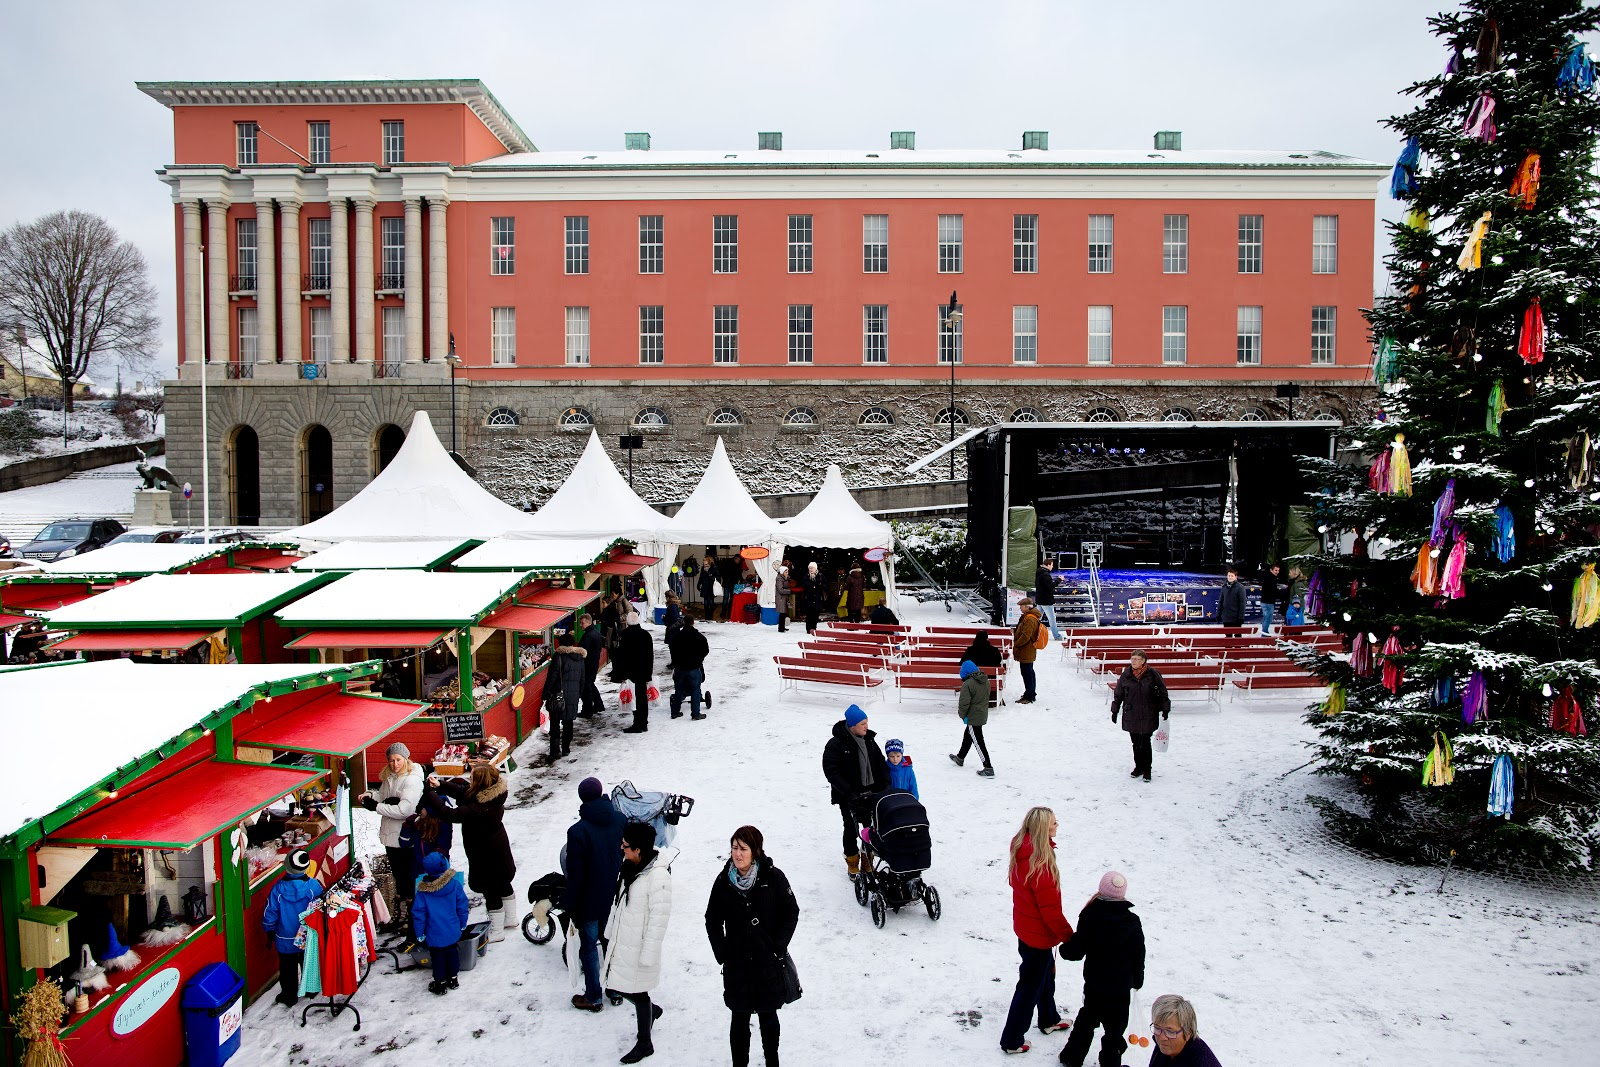 Christmas at the City Hall in Haugesund, Norway. Photo: Haakon Nordvik.